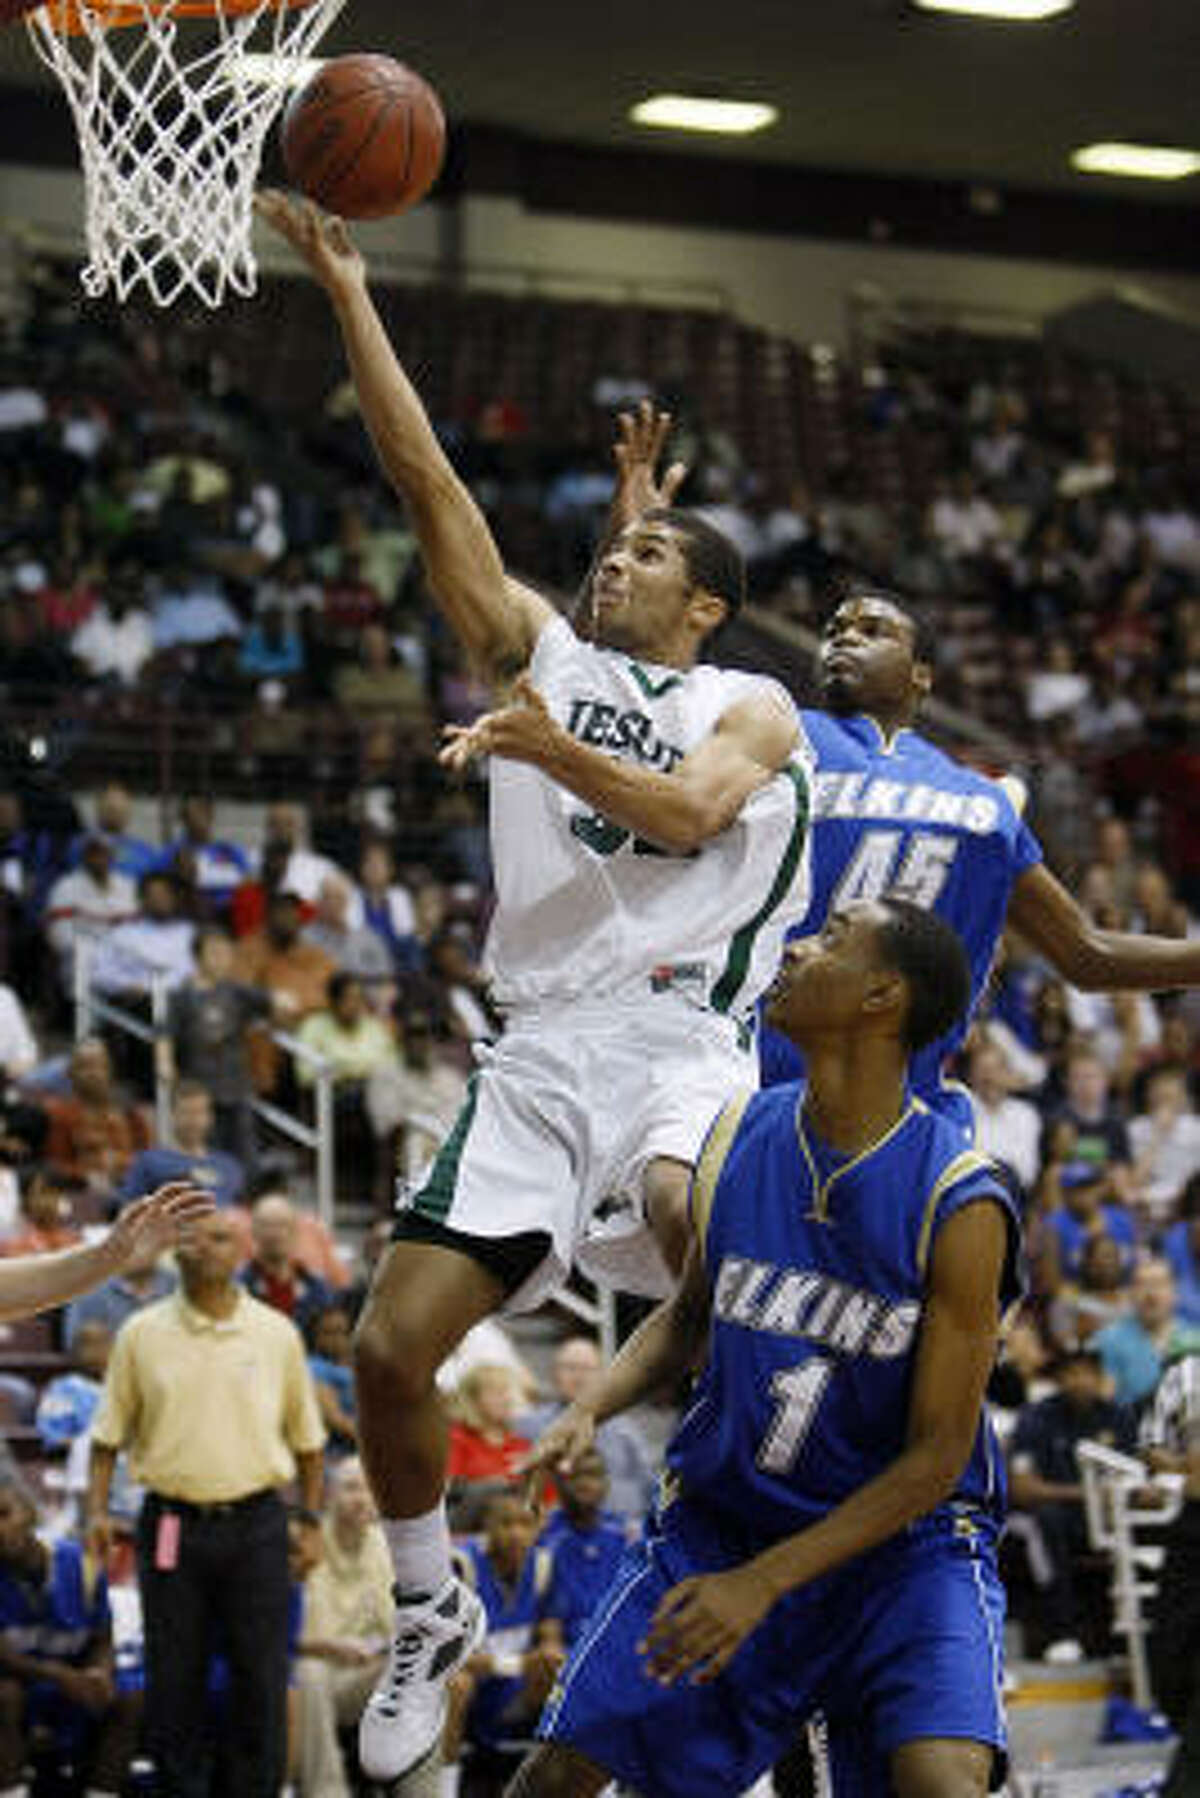 Strake Jesuit's Joey Brooks scored 20 points as Strake improved to 36-0 after beating Elkins.